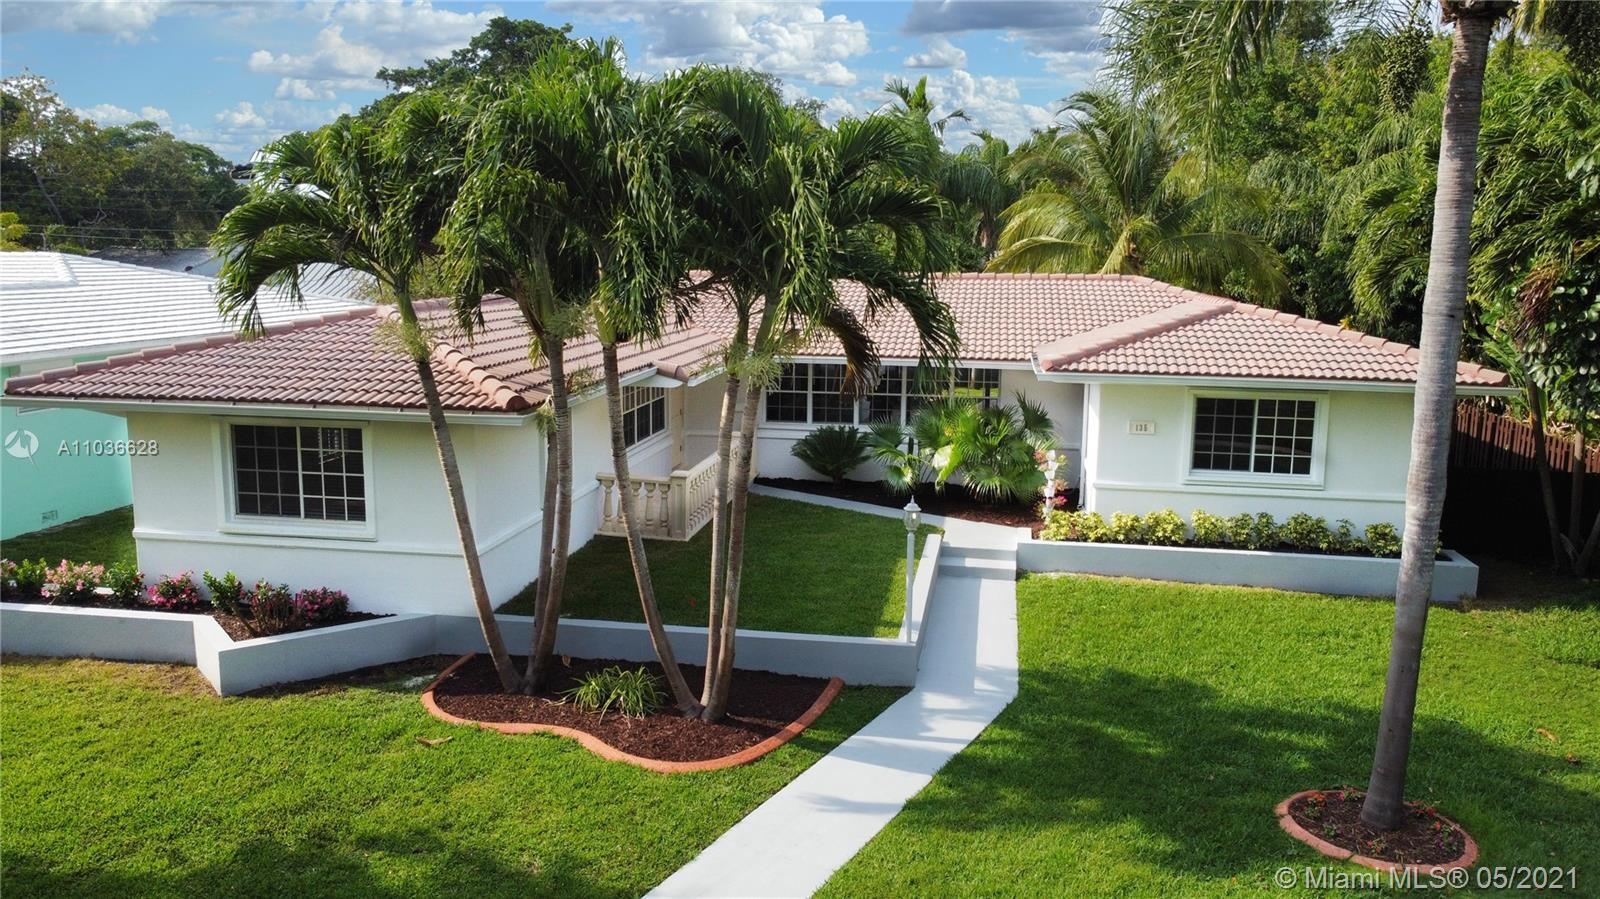 Welcome to this well maintained Miami Shores Home! It has an oversize lot with 3 beds, 2 baths, plus